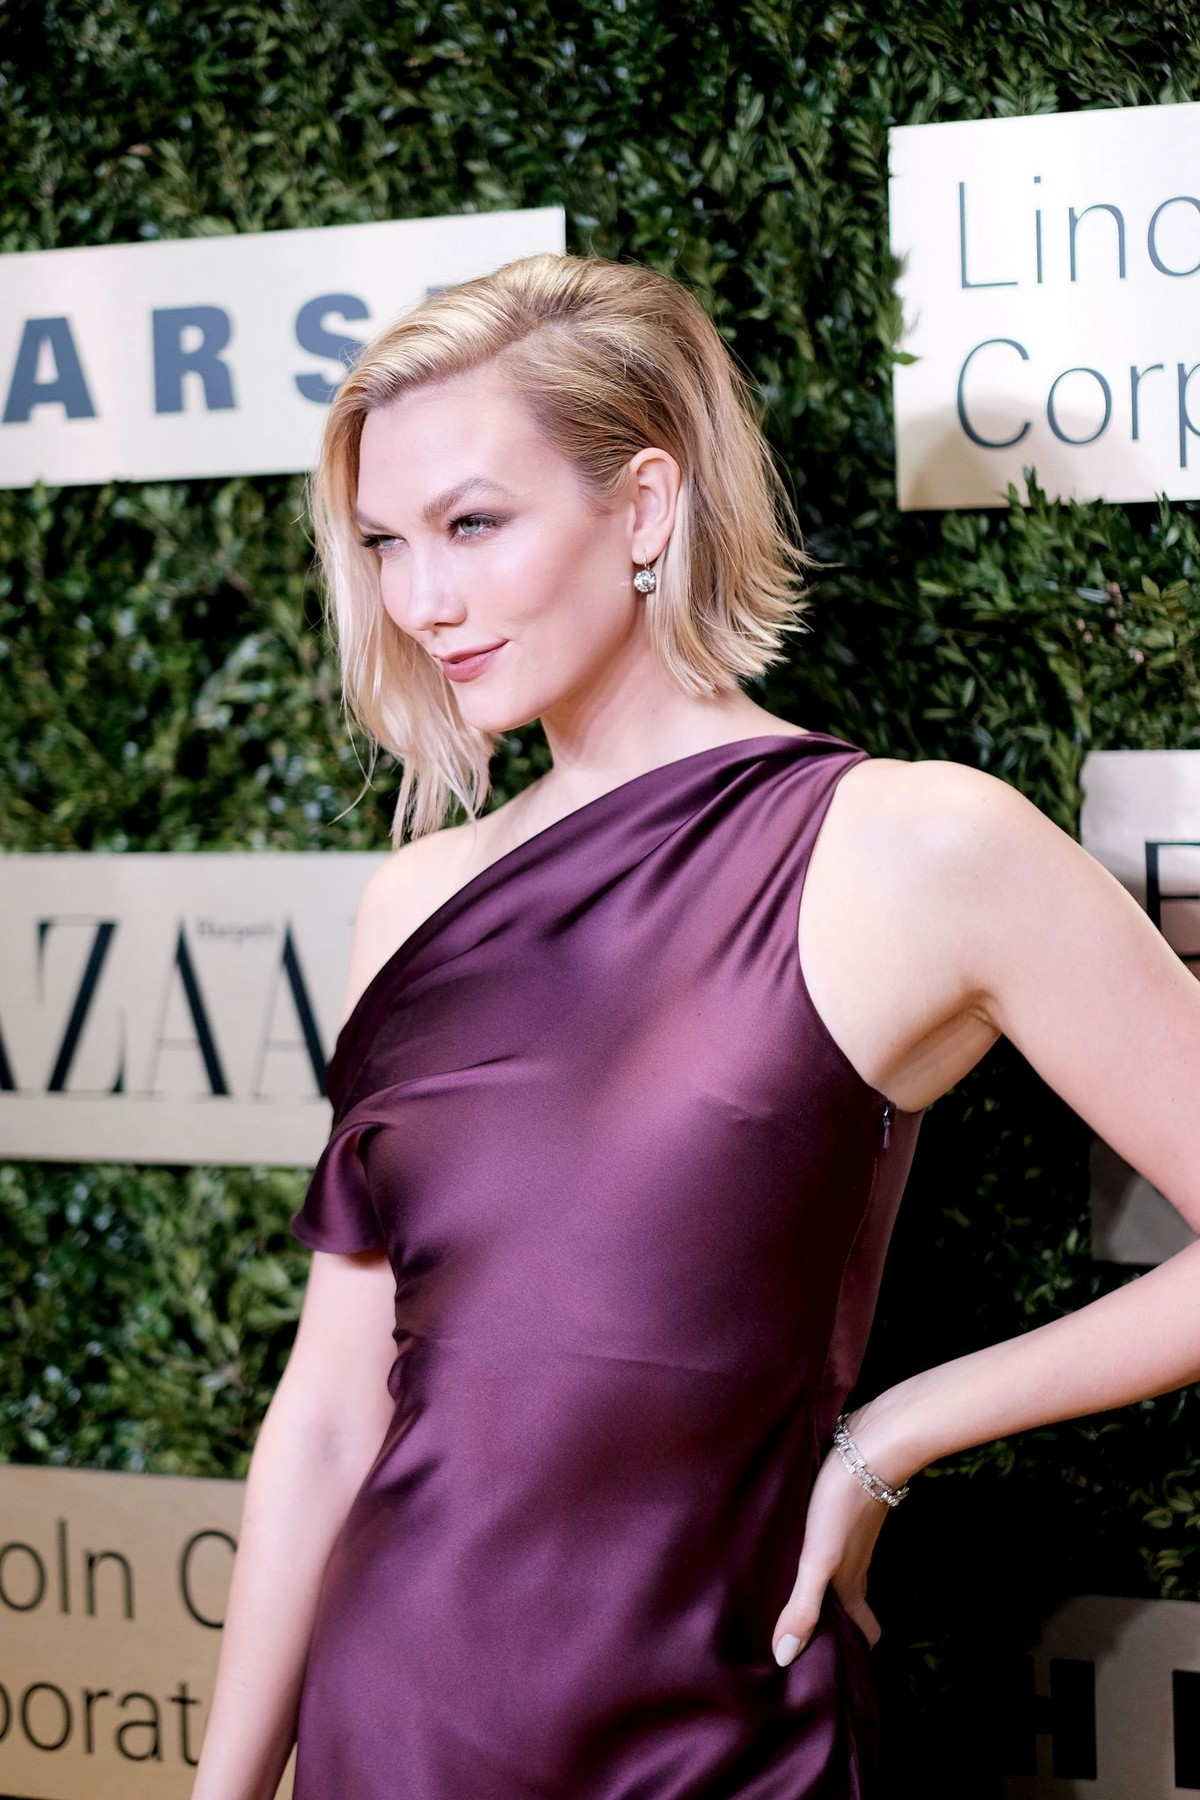 Karlie Kloss attends Lincoln Center Corporate Fashion Fund Gala in New York City 2019/11/18 16